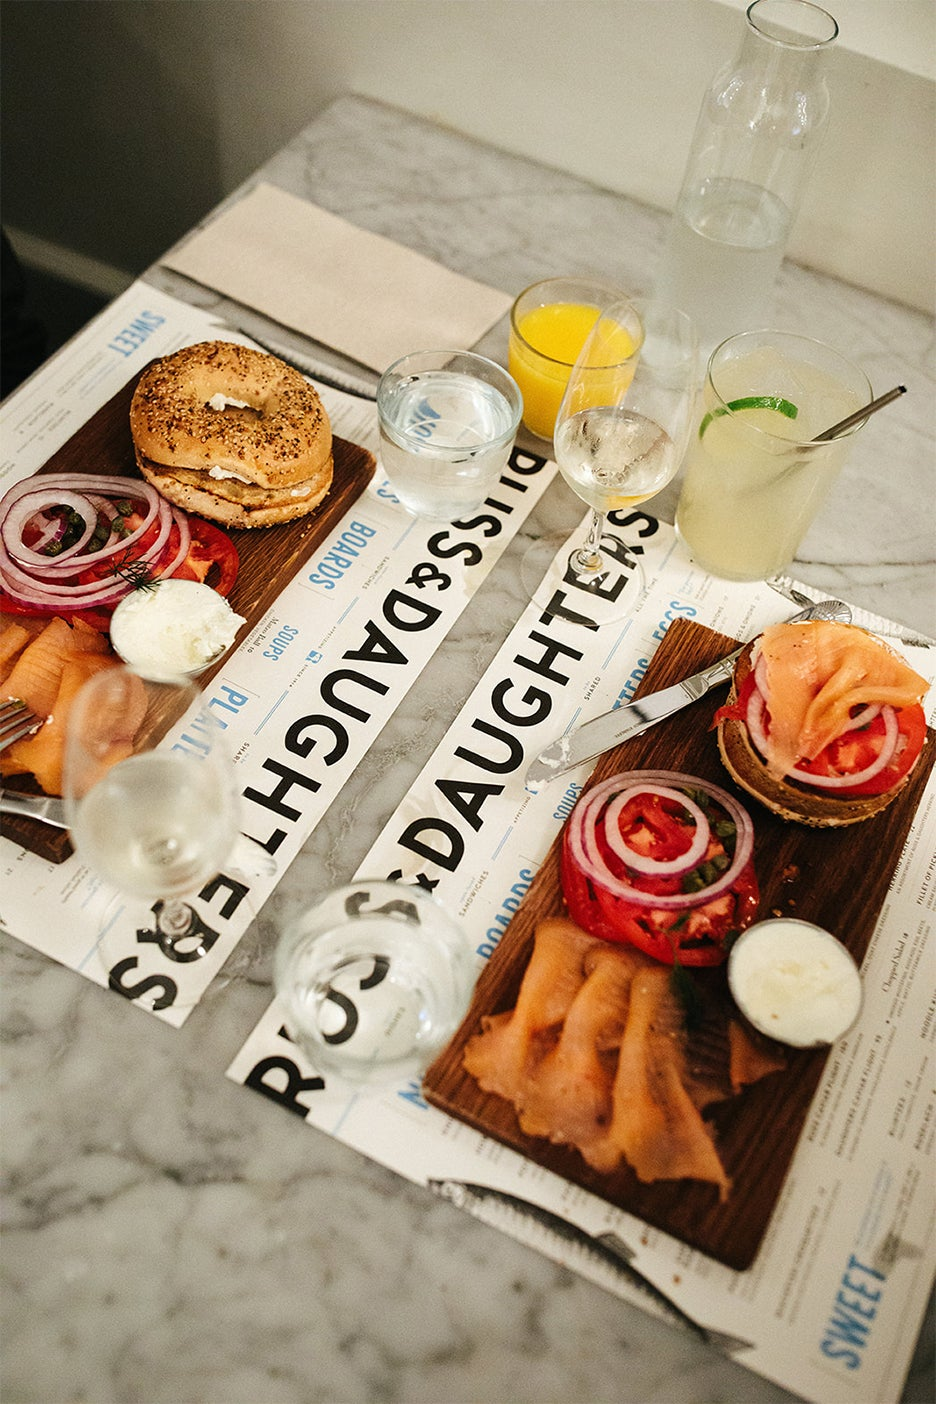 Russ and Daughters spread